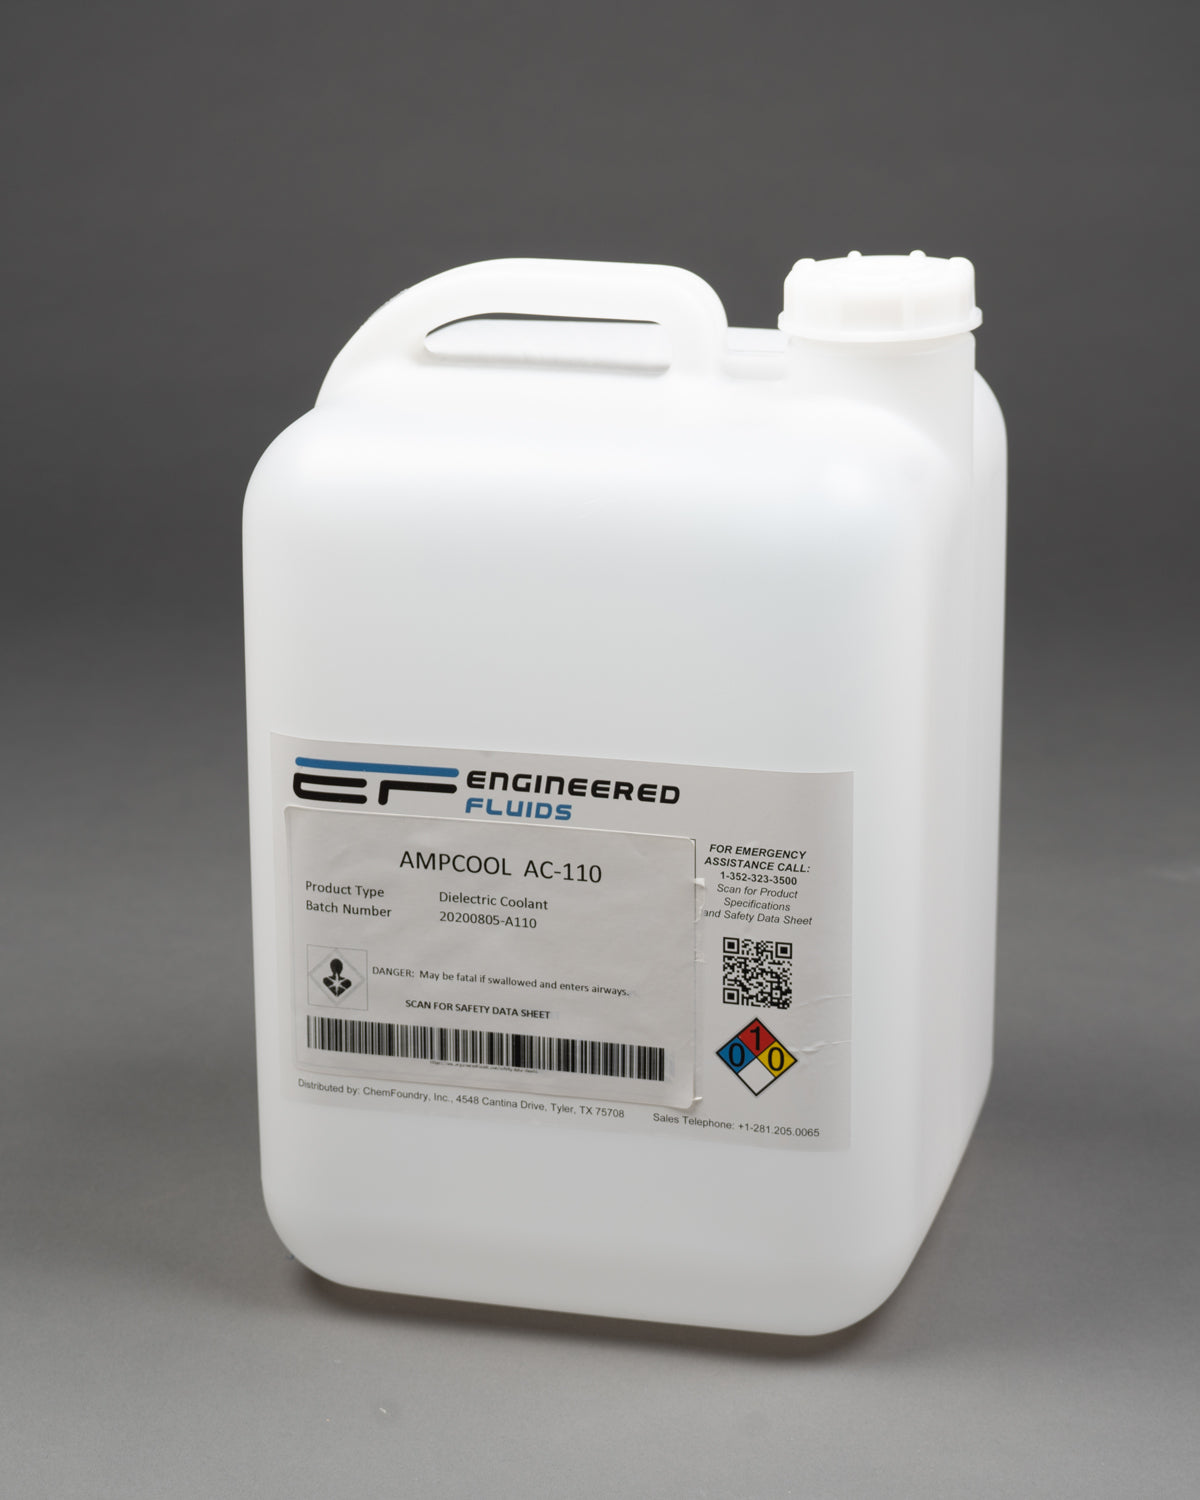 AmpCool® AC-110 Dielectric Coolant